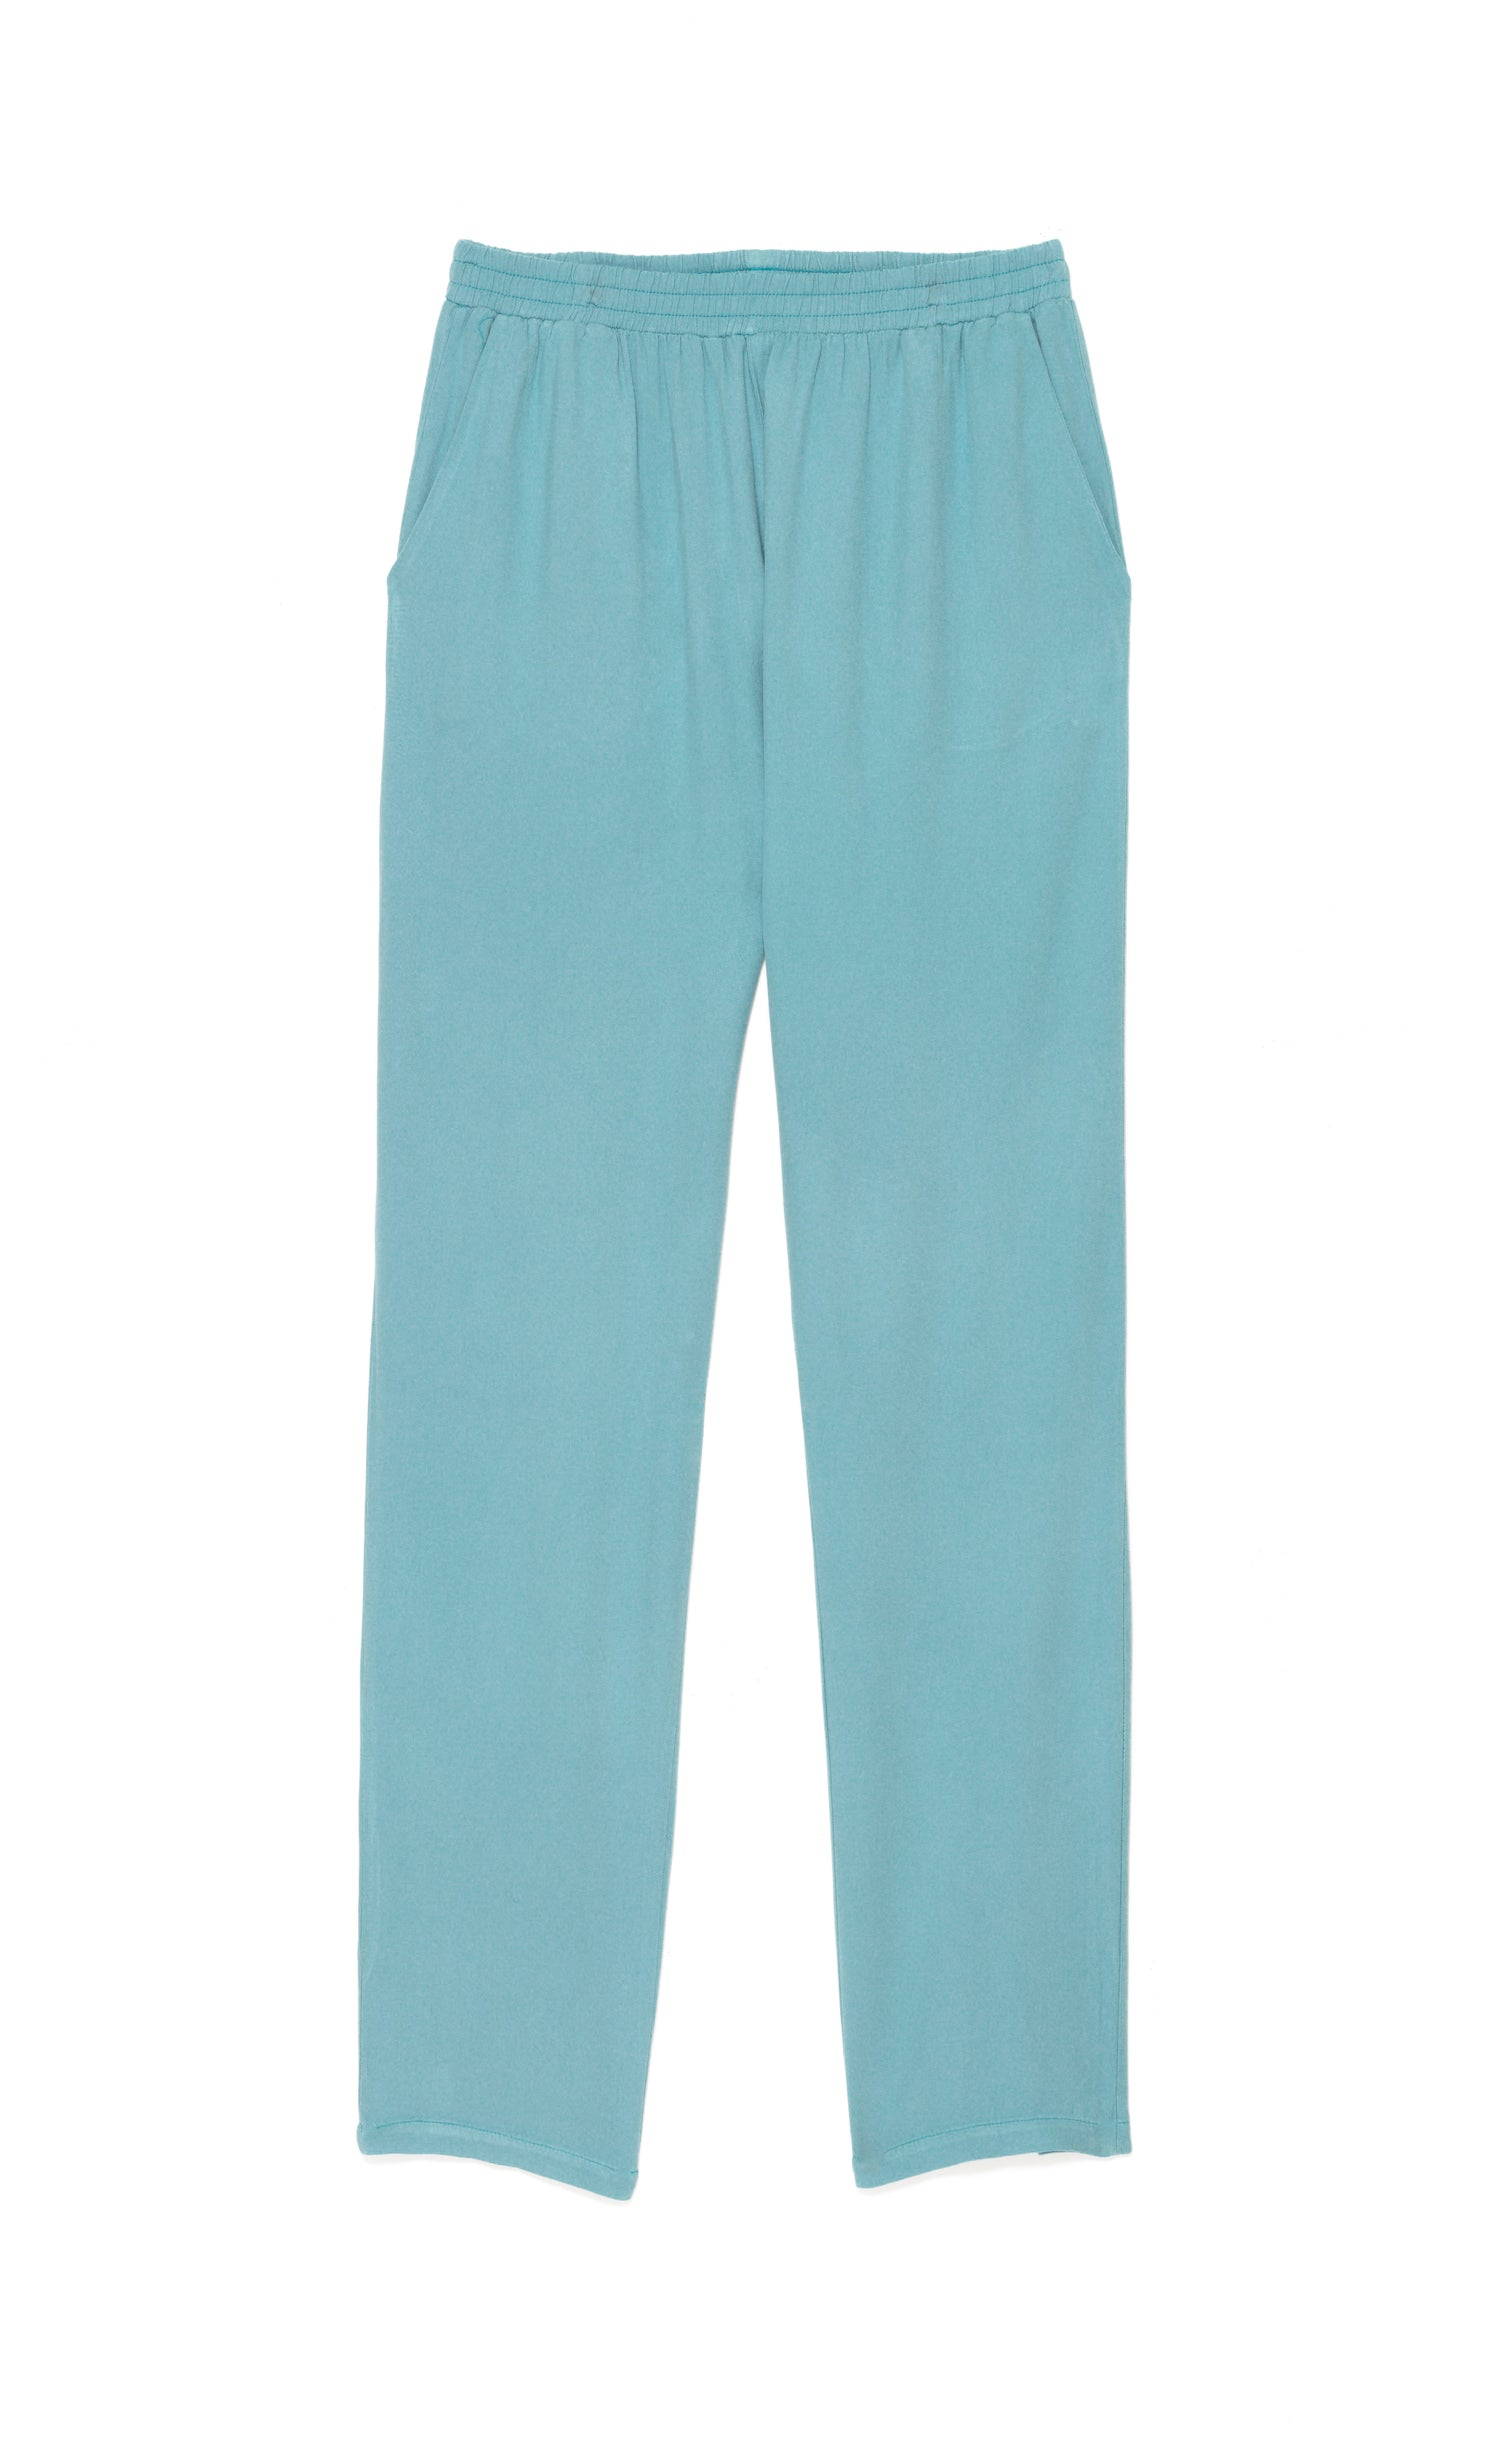 Image of Pantalon twill viscose PENELOPE coloris pastels